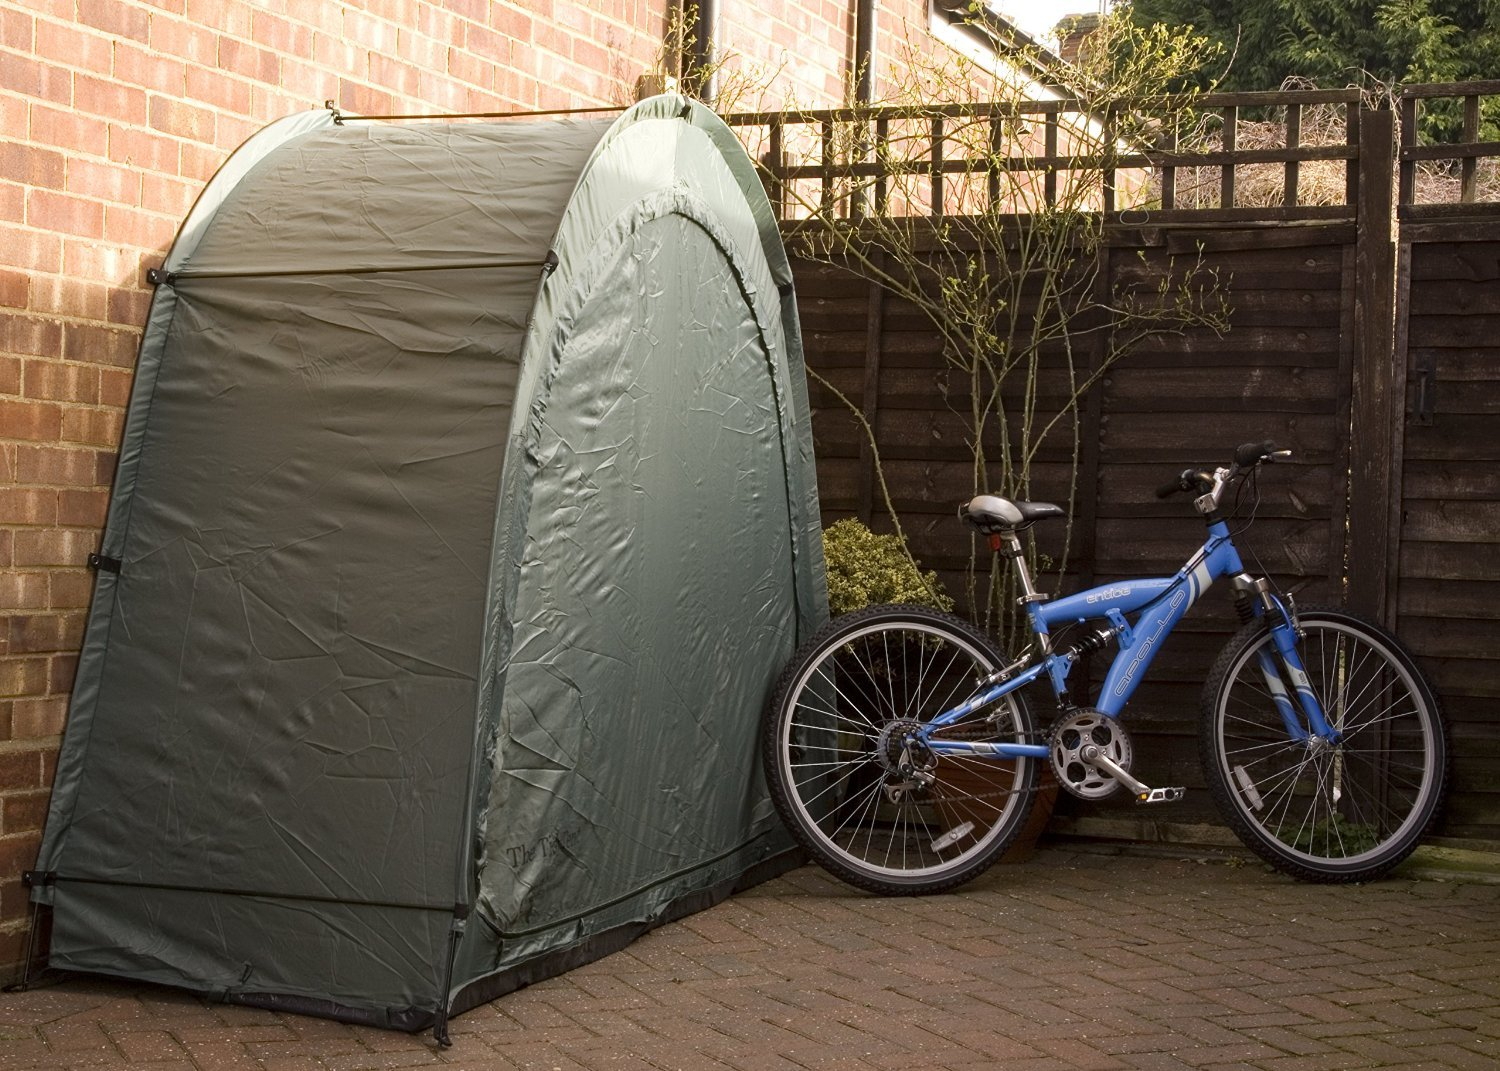 & Green Tidy Bike Storage Tent: Amazon.co.uk: DIY u0026 Tools